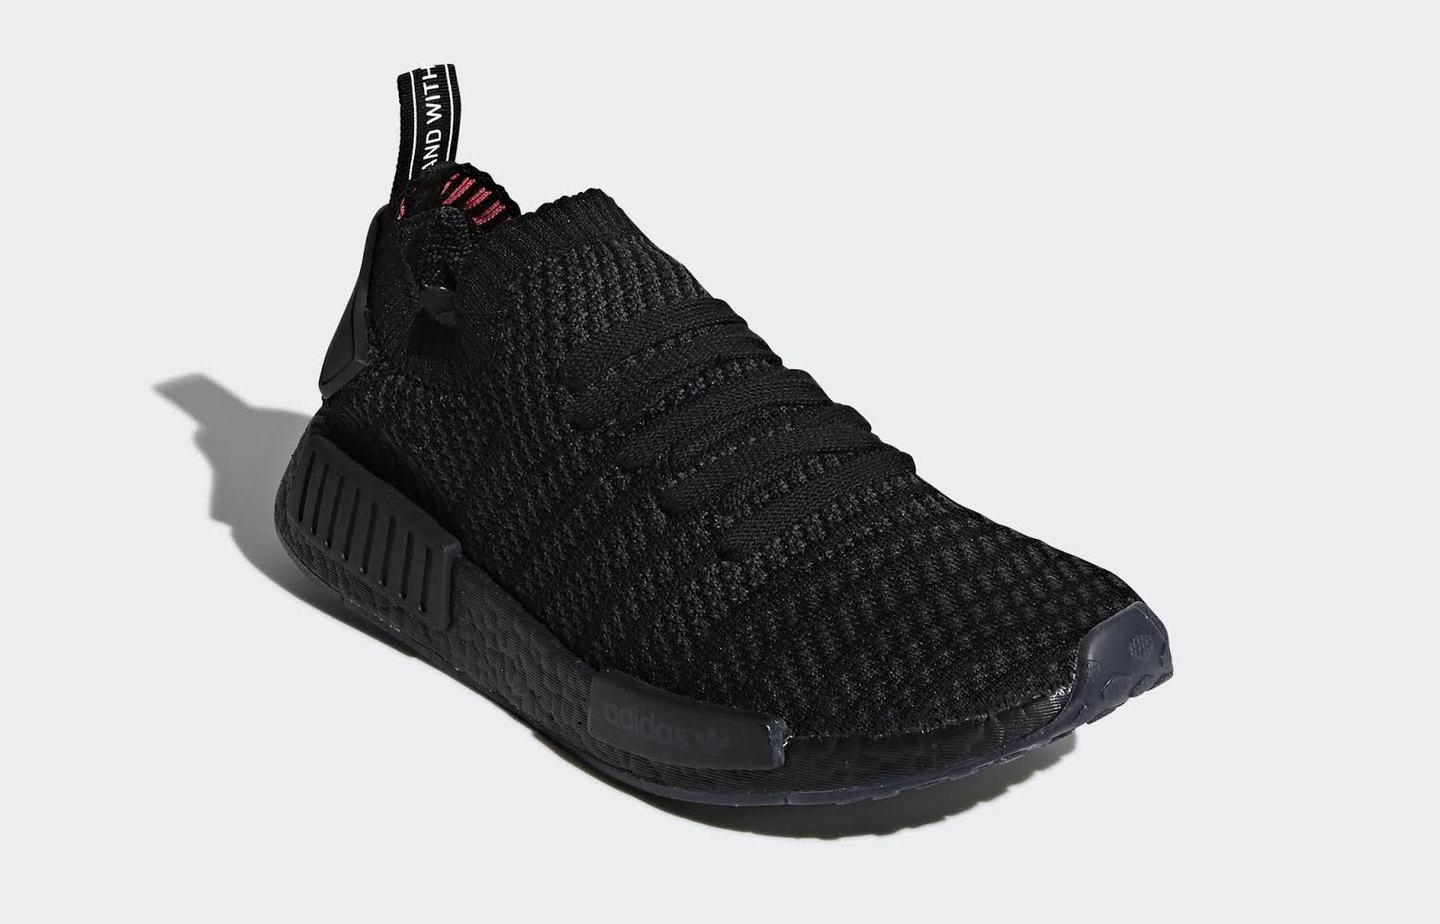 d9c238c8d85 The recently released NMD STLT has yet to live up to it's full potential.  The original drop included several hot colorways that flew under the radar  as ...